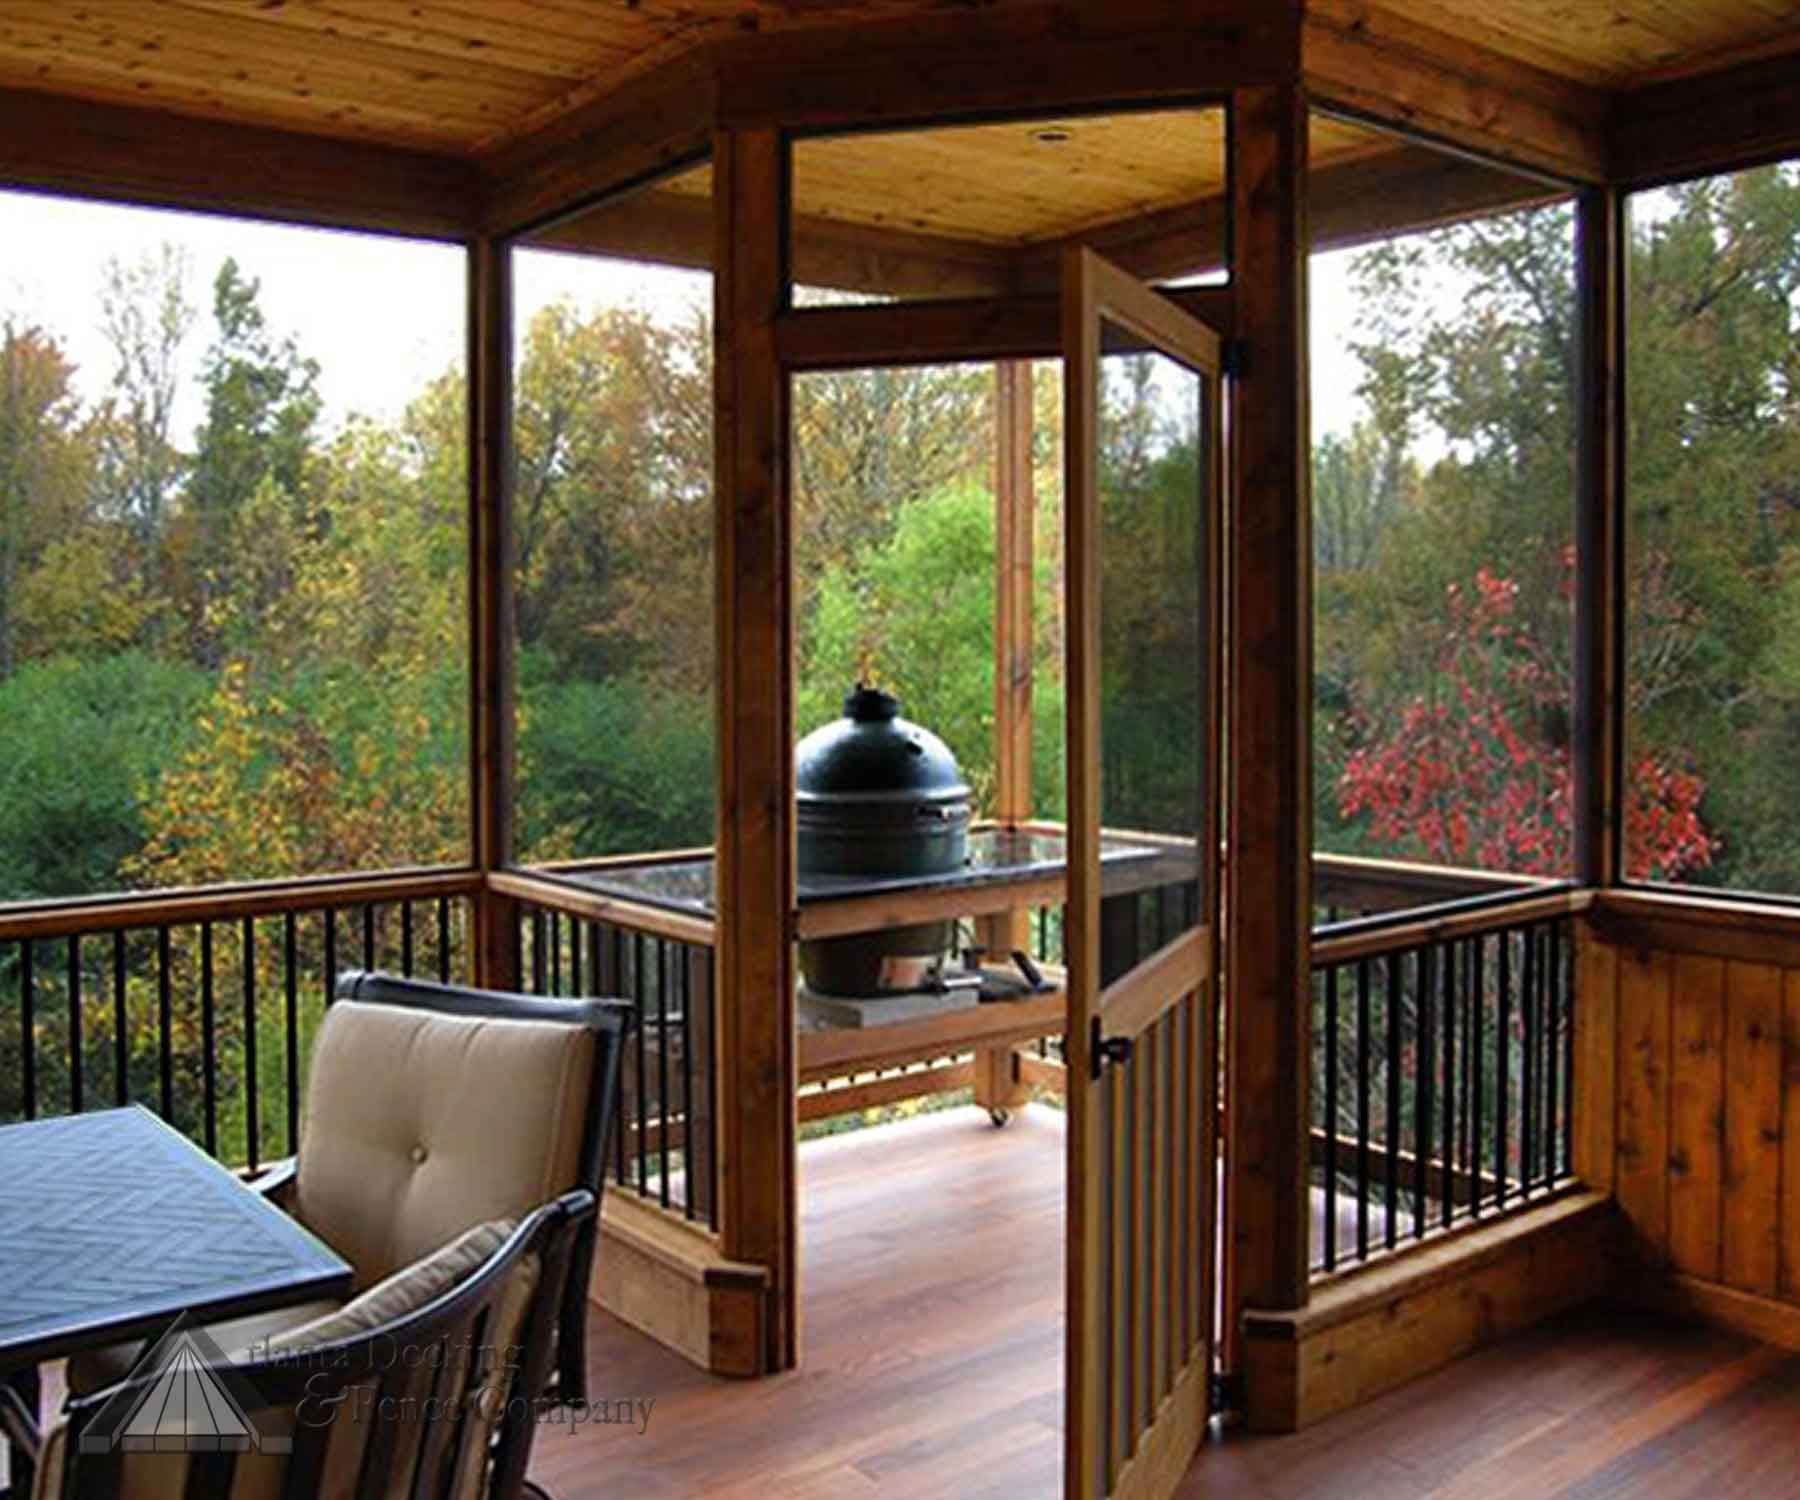 Screened In Porch Ideas Design porch for all seasons screen porch design ideas screen porch design ideas Backyard Porch Designs Back Porch Ideas Gcas Screened In Back Porch Ideas Screened In Back Porch